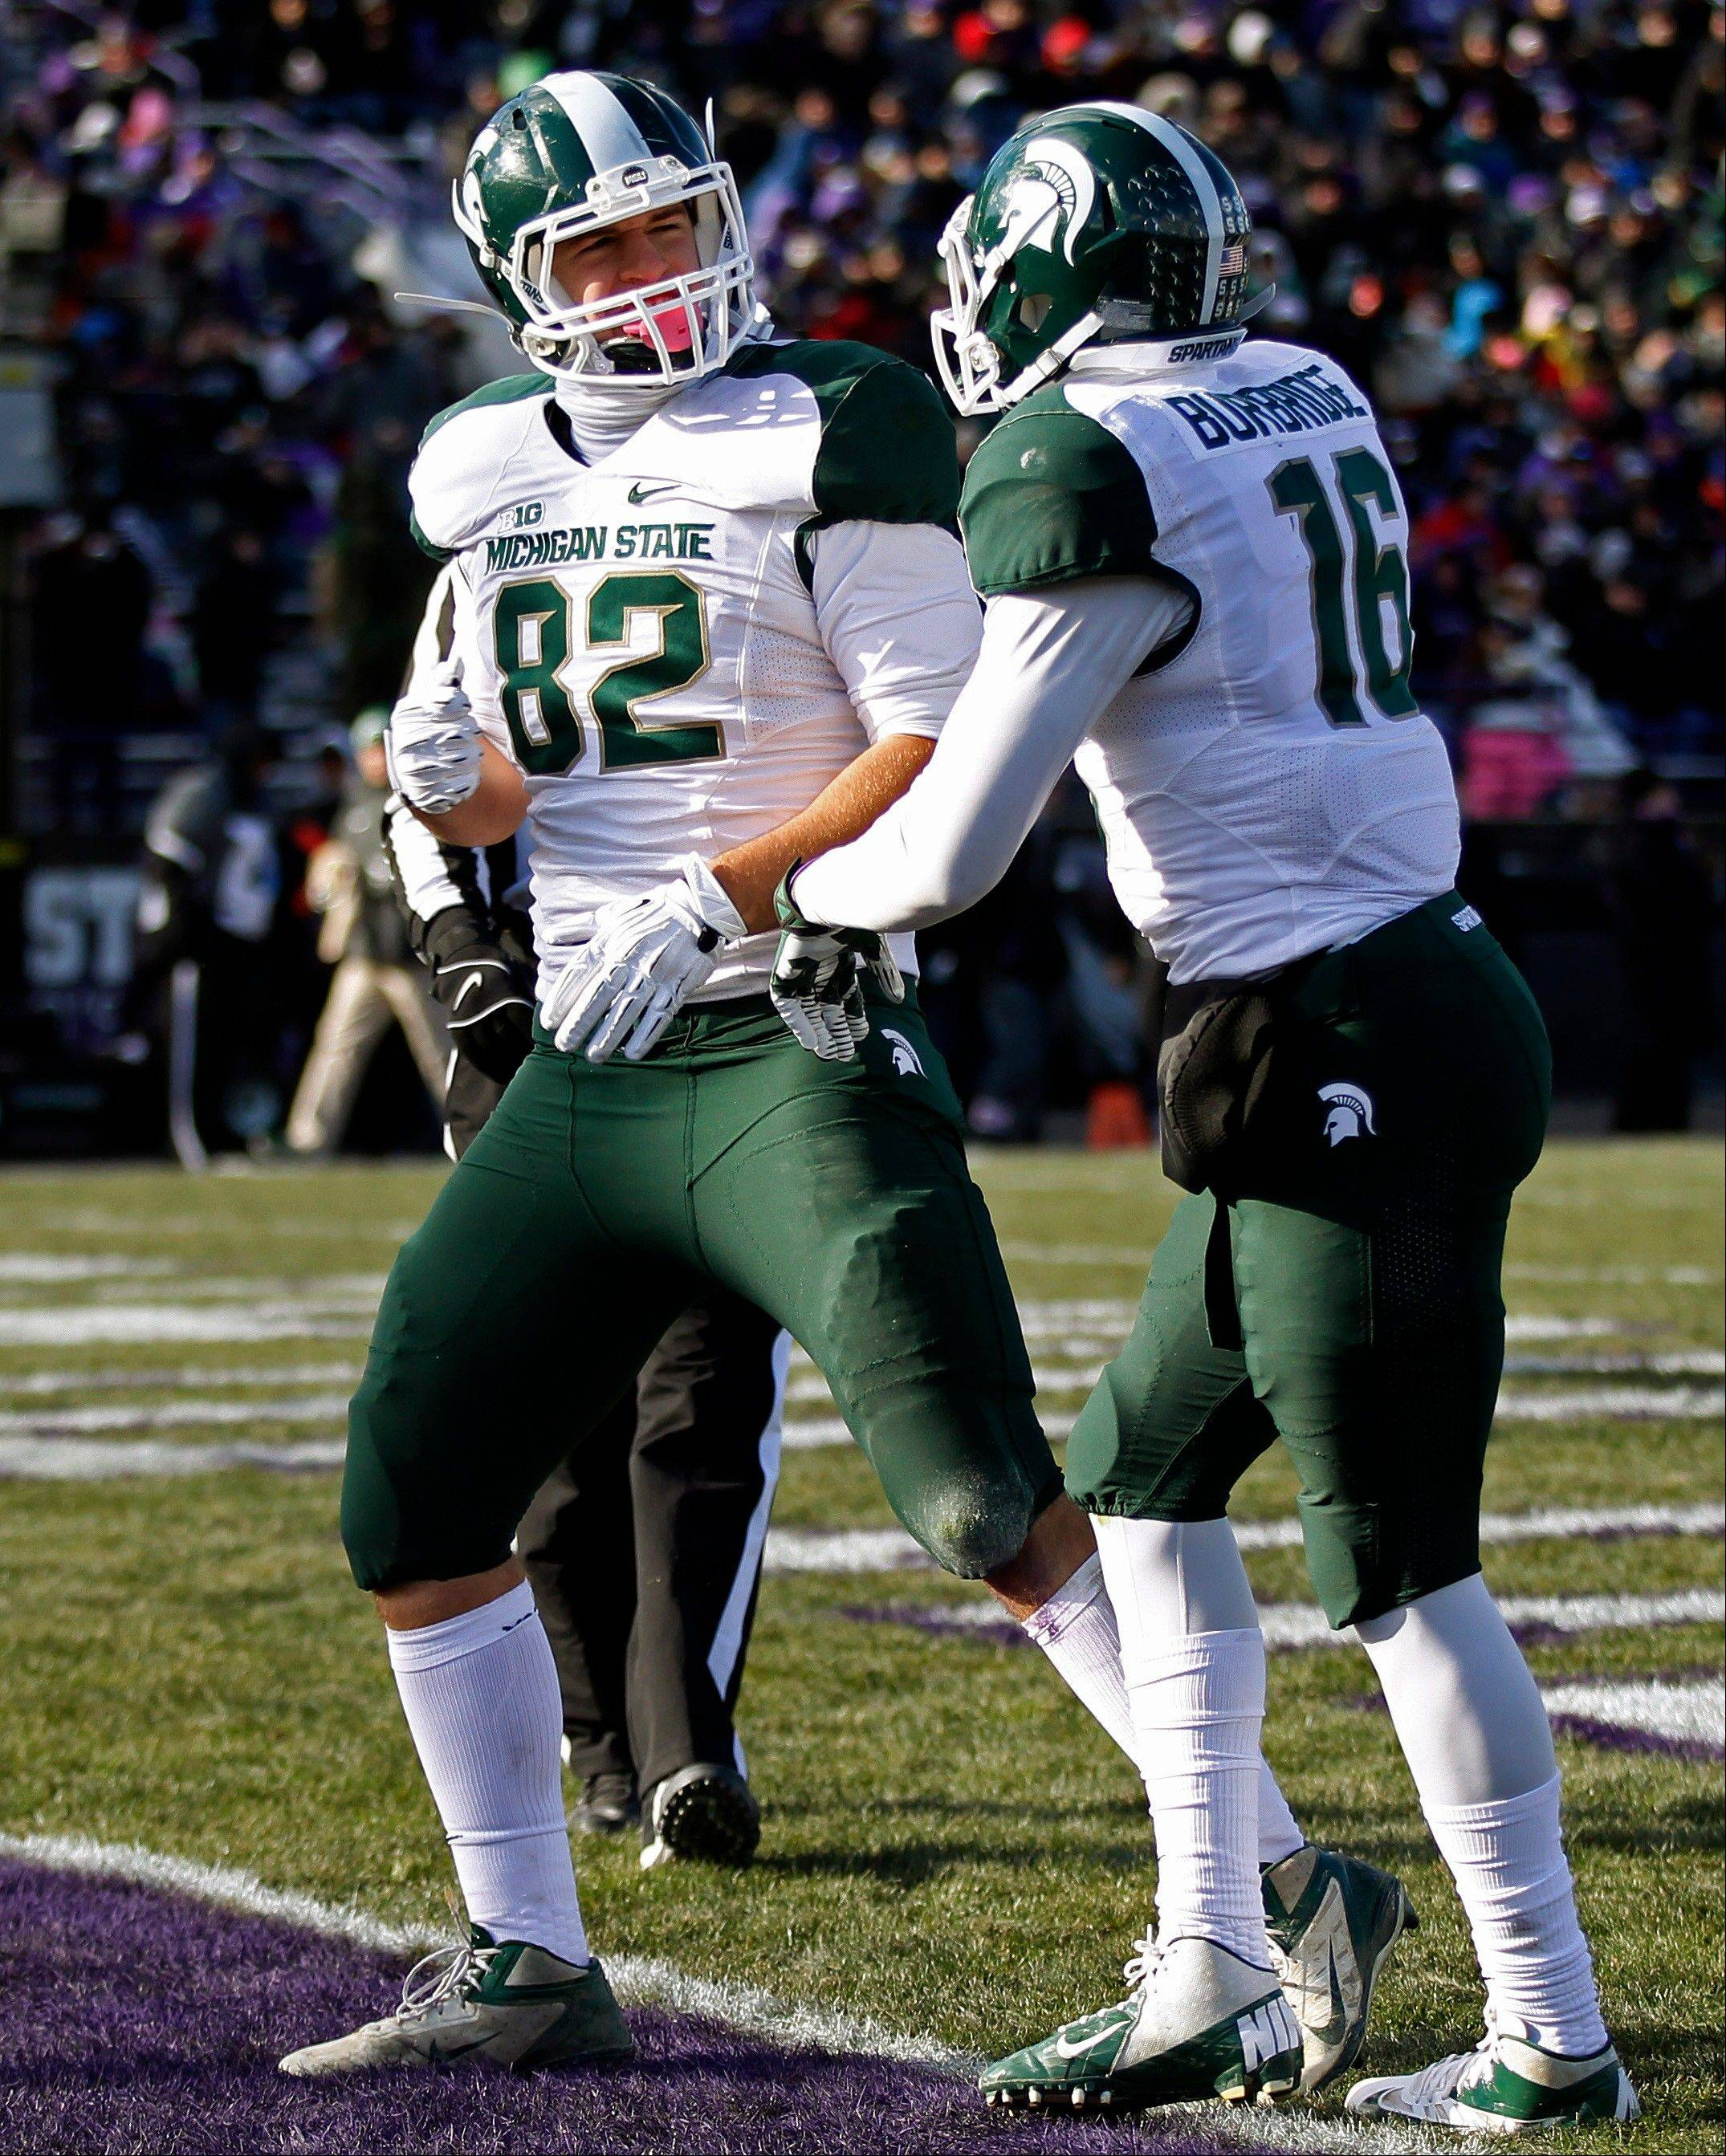 Michigan State tight end Josiah Price (82) celebrates scoring a touchdown with teammate wide receiver Aaron Burbridge (16) during the second half of last Saturday's road win over Northwestern.